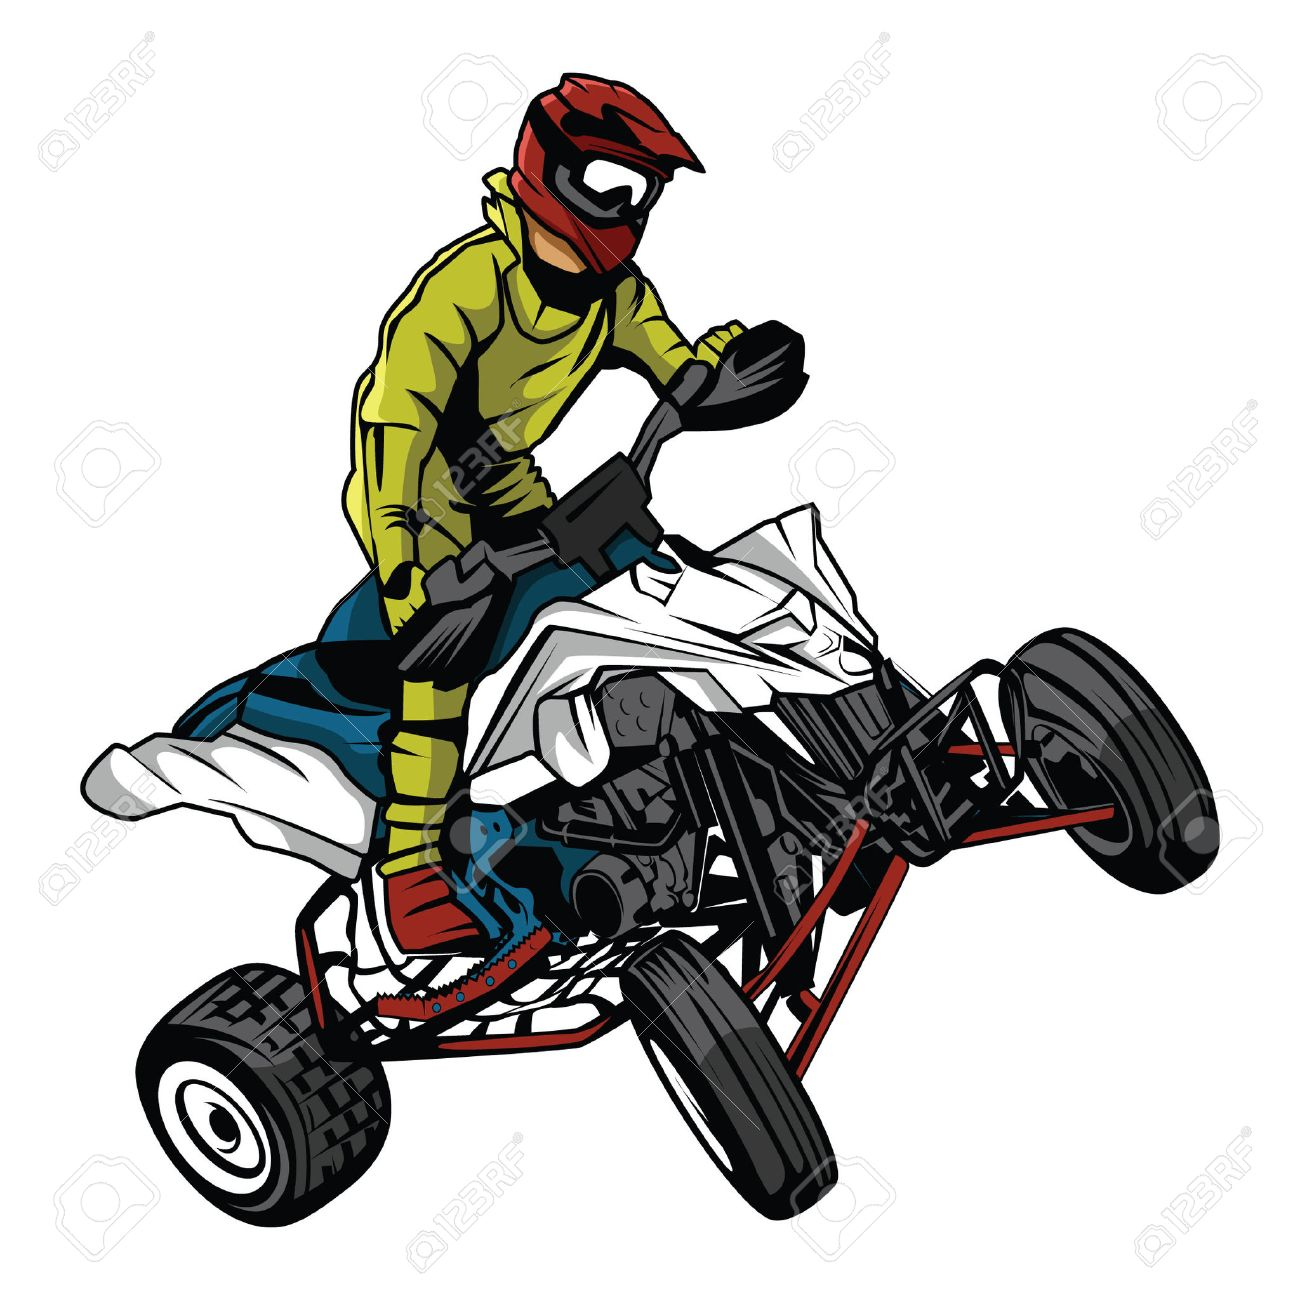 atv moto rider royalty free cliparts vectors and stock rh 123rf com atv cartoon clip art atv clip art free